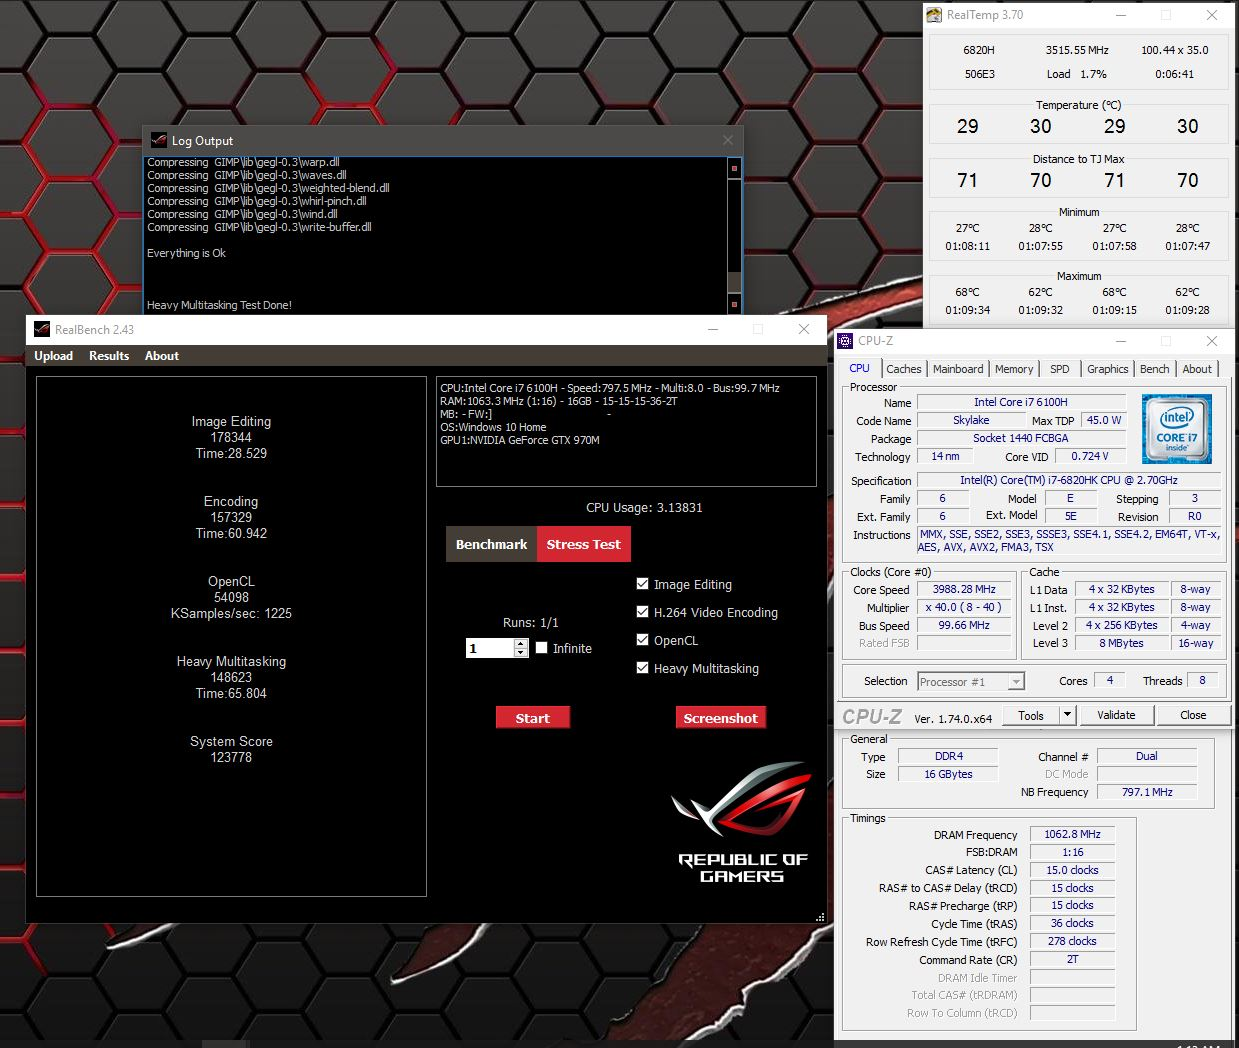 MSI GT72 Dominator Performance, Tuning, Overclocking, and Upgrades